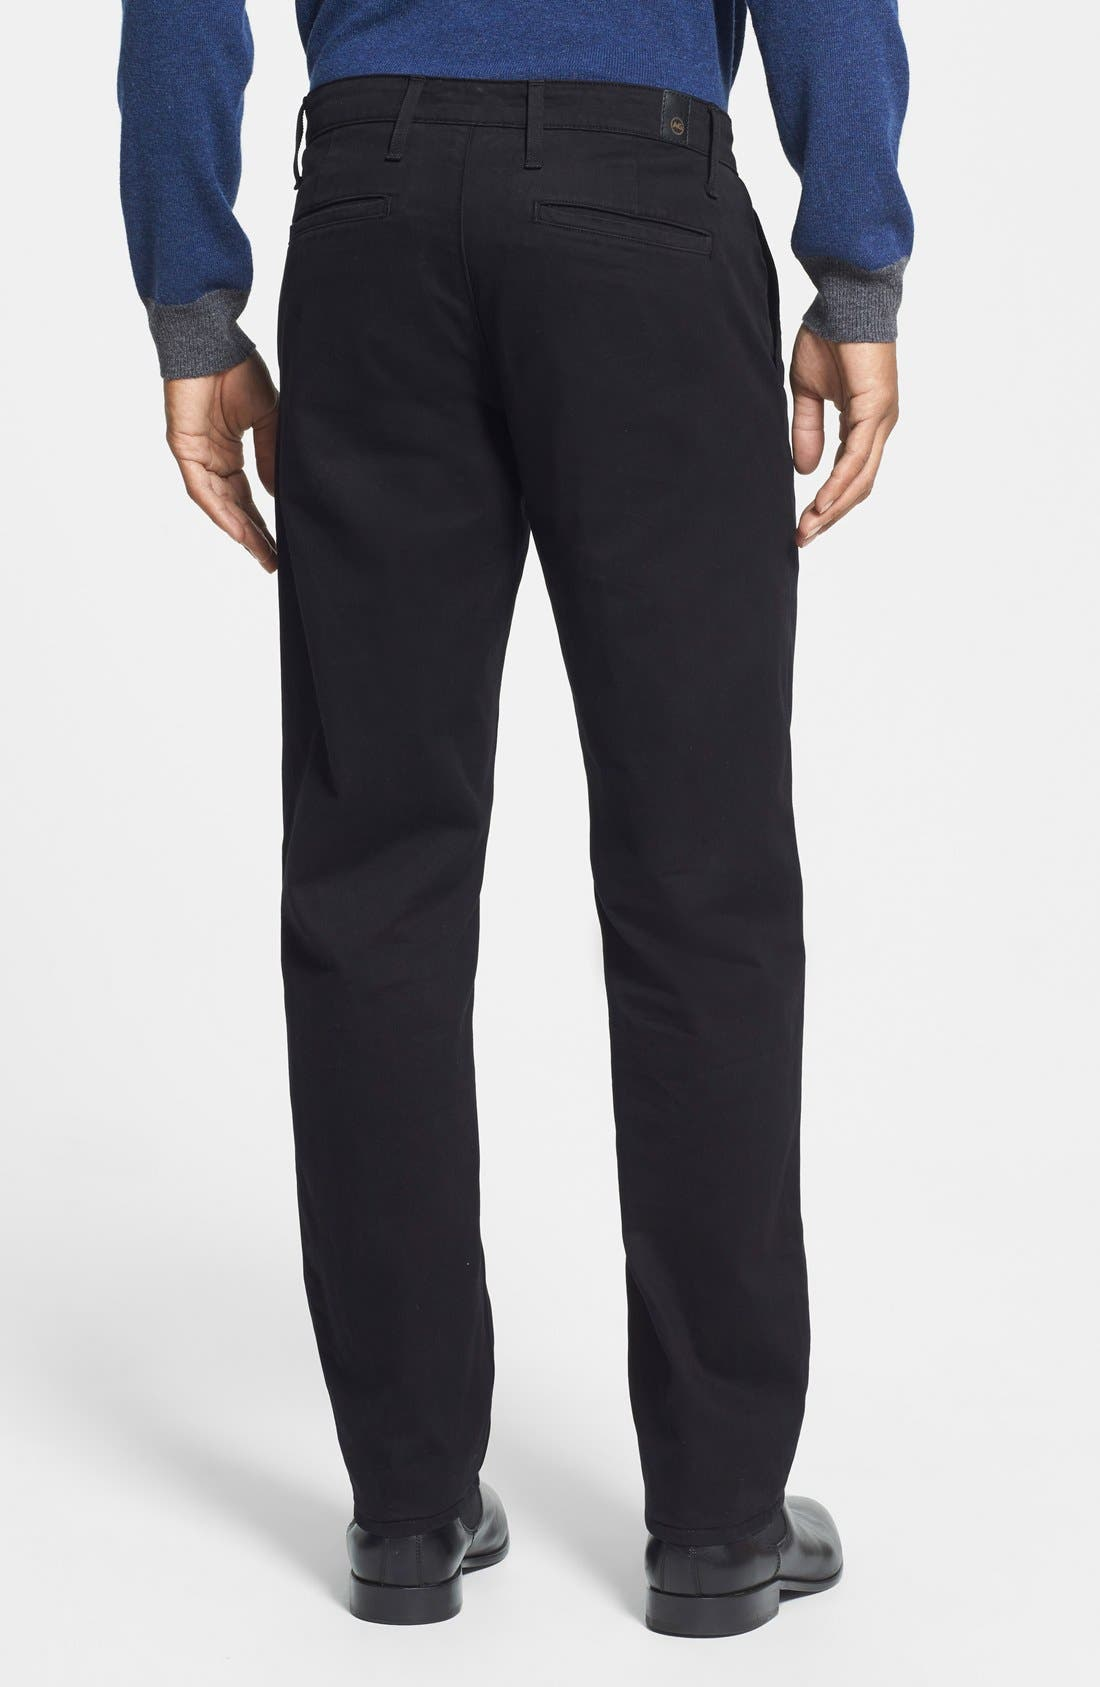 'The Lux' Tailored Straight Leg Chinos,                             Alternate thumbnail 17, color,